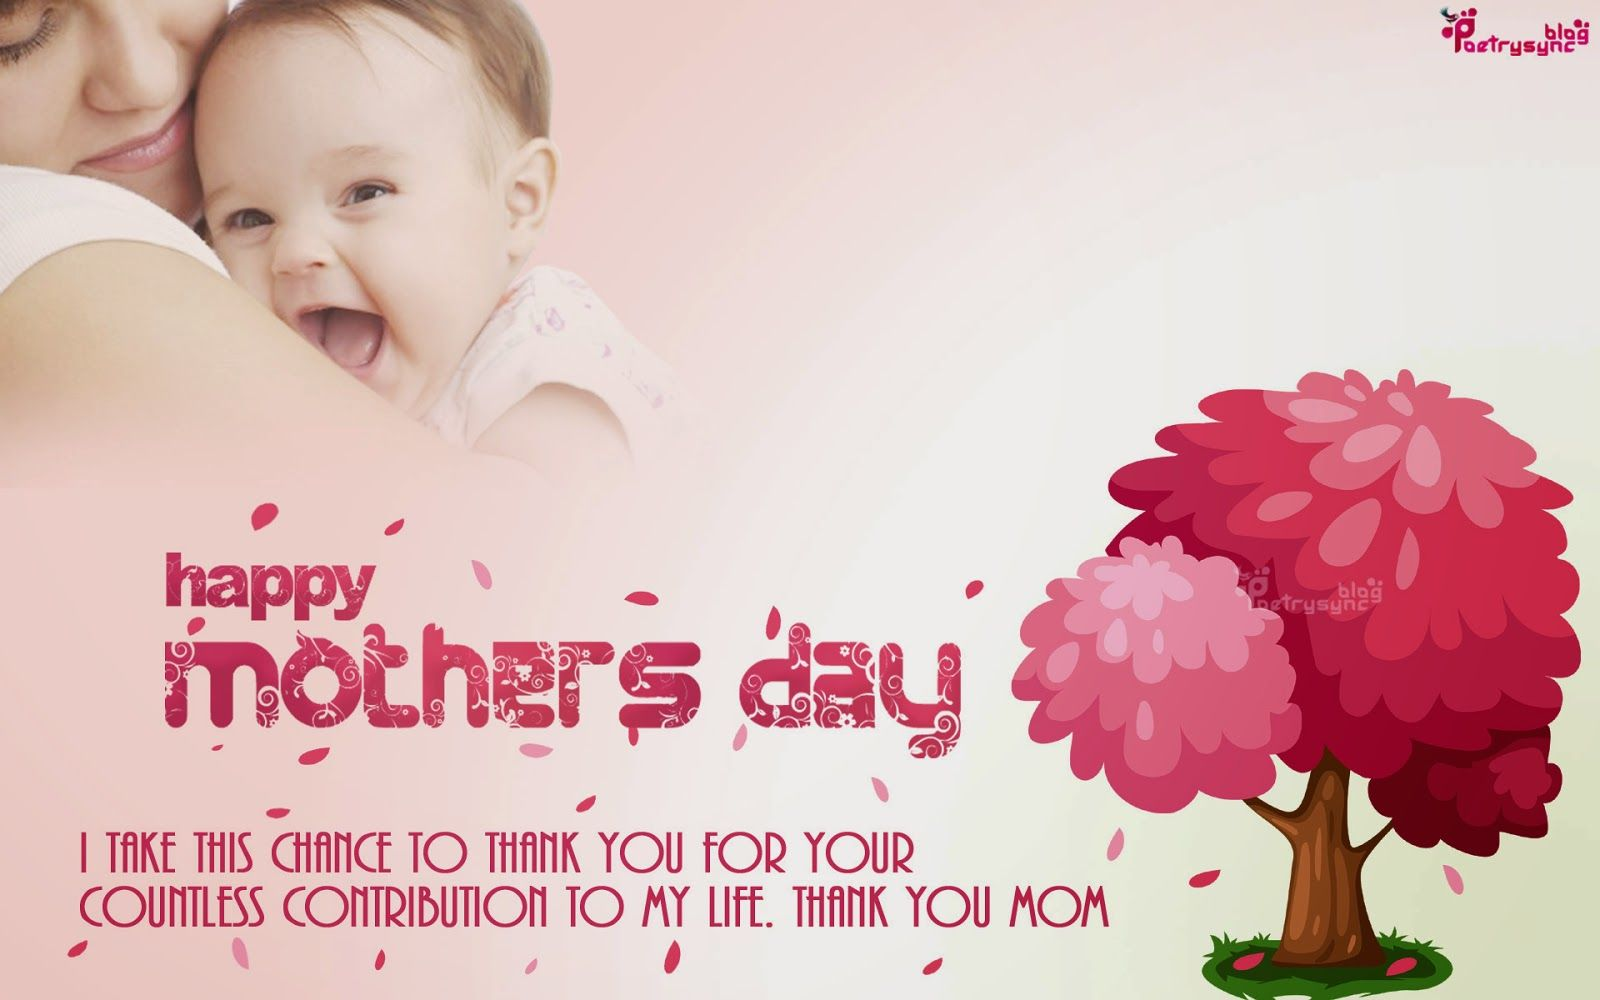 dd mothers day ver - HD1600×1000